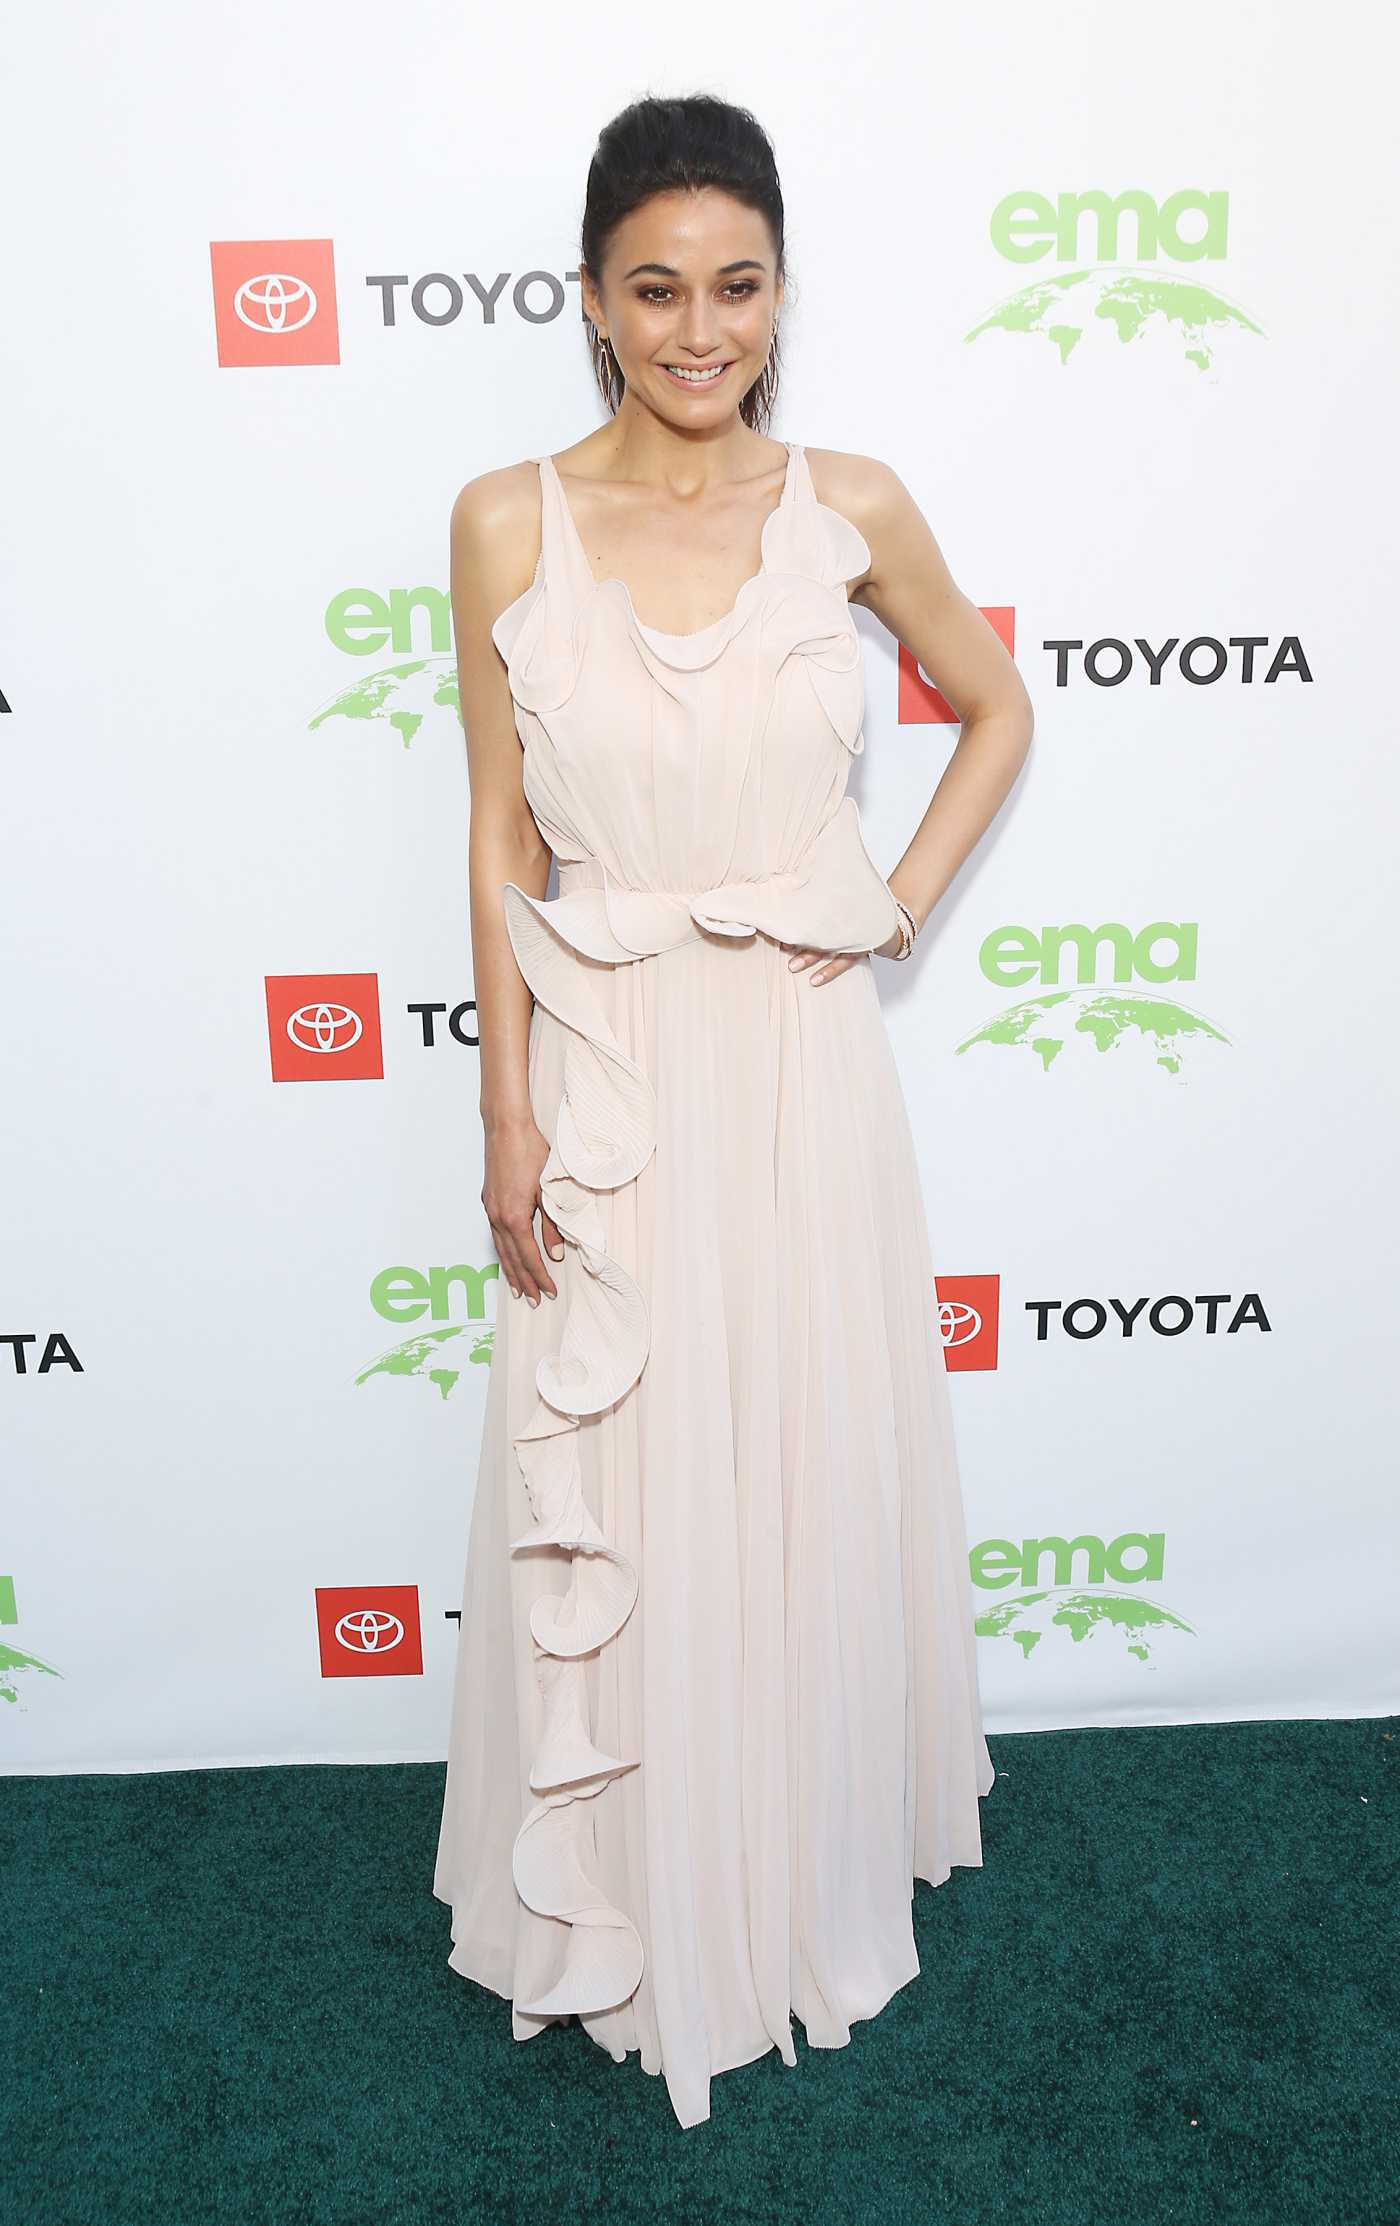 Emmanuelle Chriqui Attends the 29th Annual Environmental Media Awards in Beverly Hills 05/30/2019